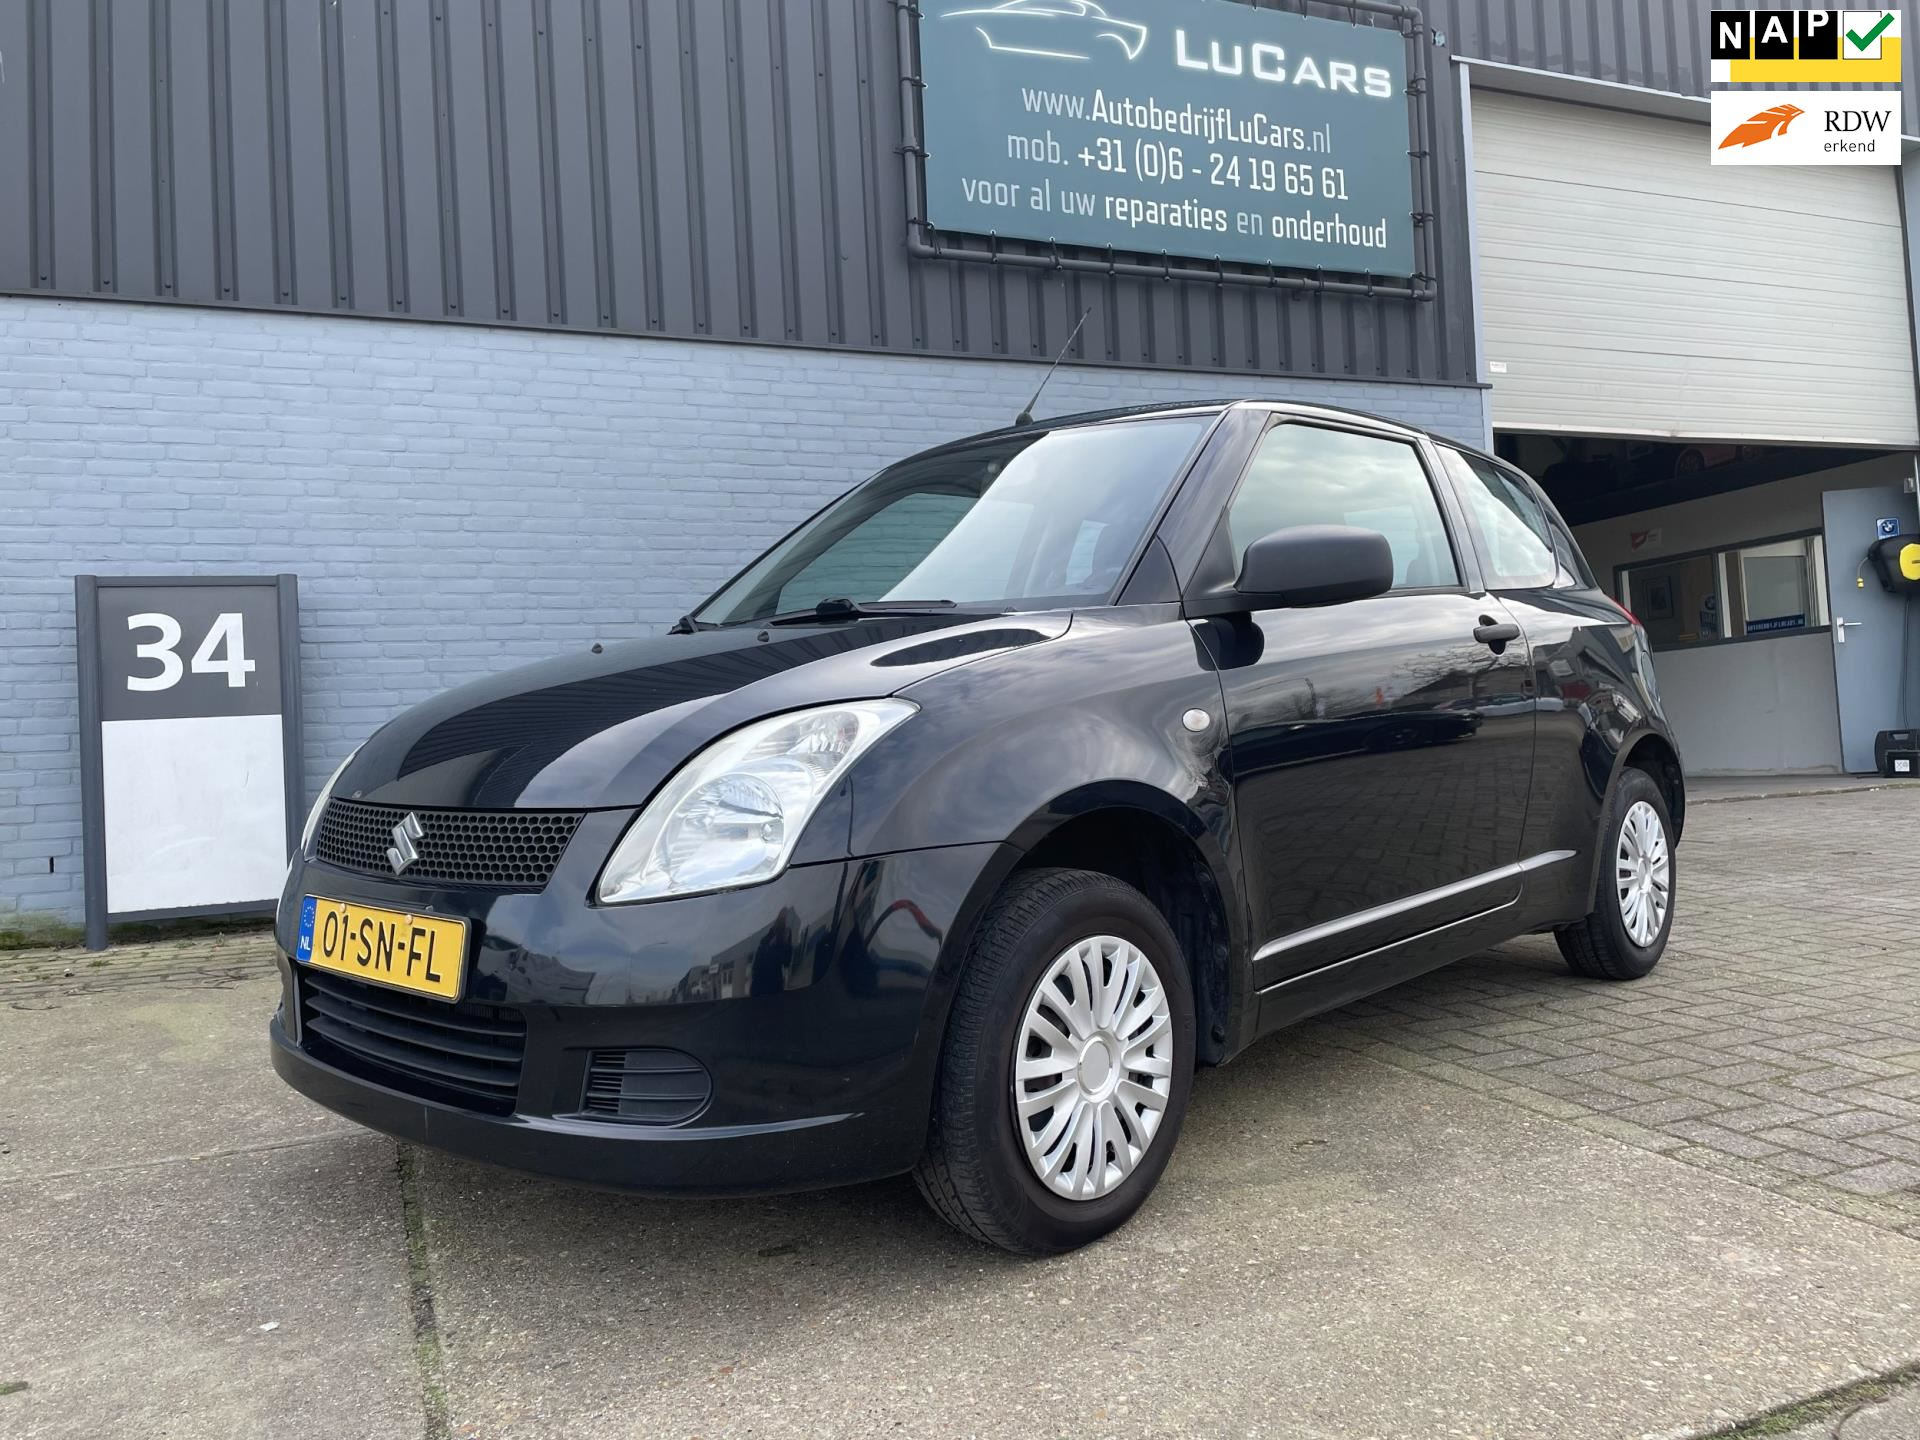 Suzuki Swift occasion - LuCars